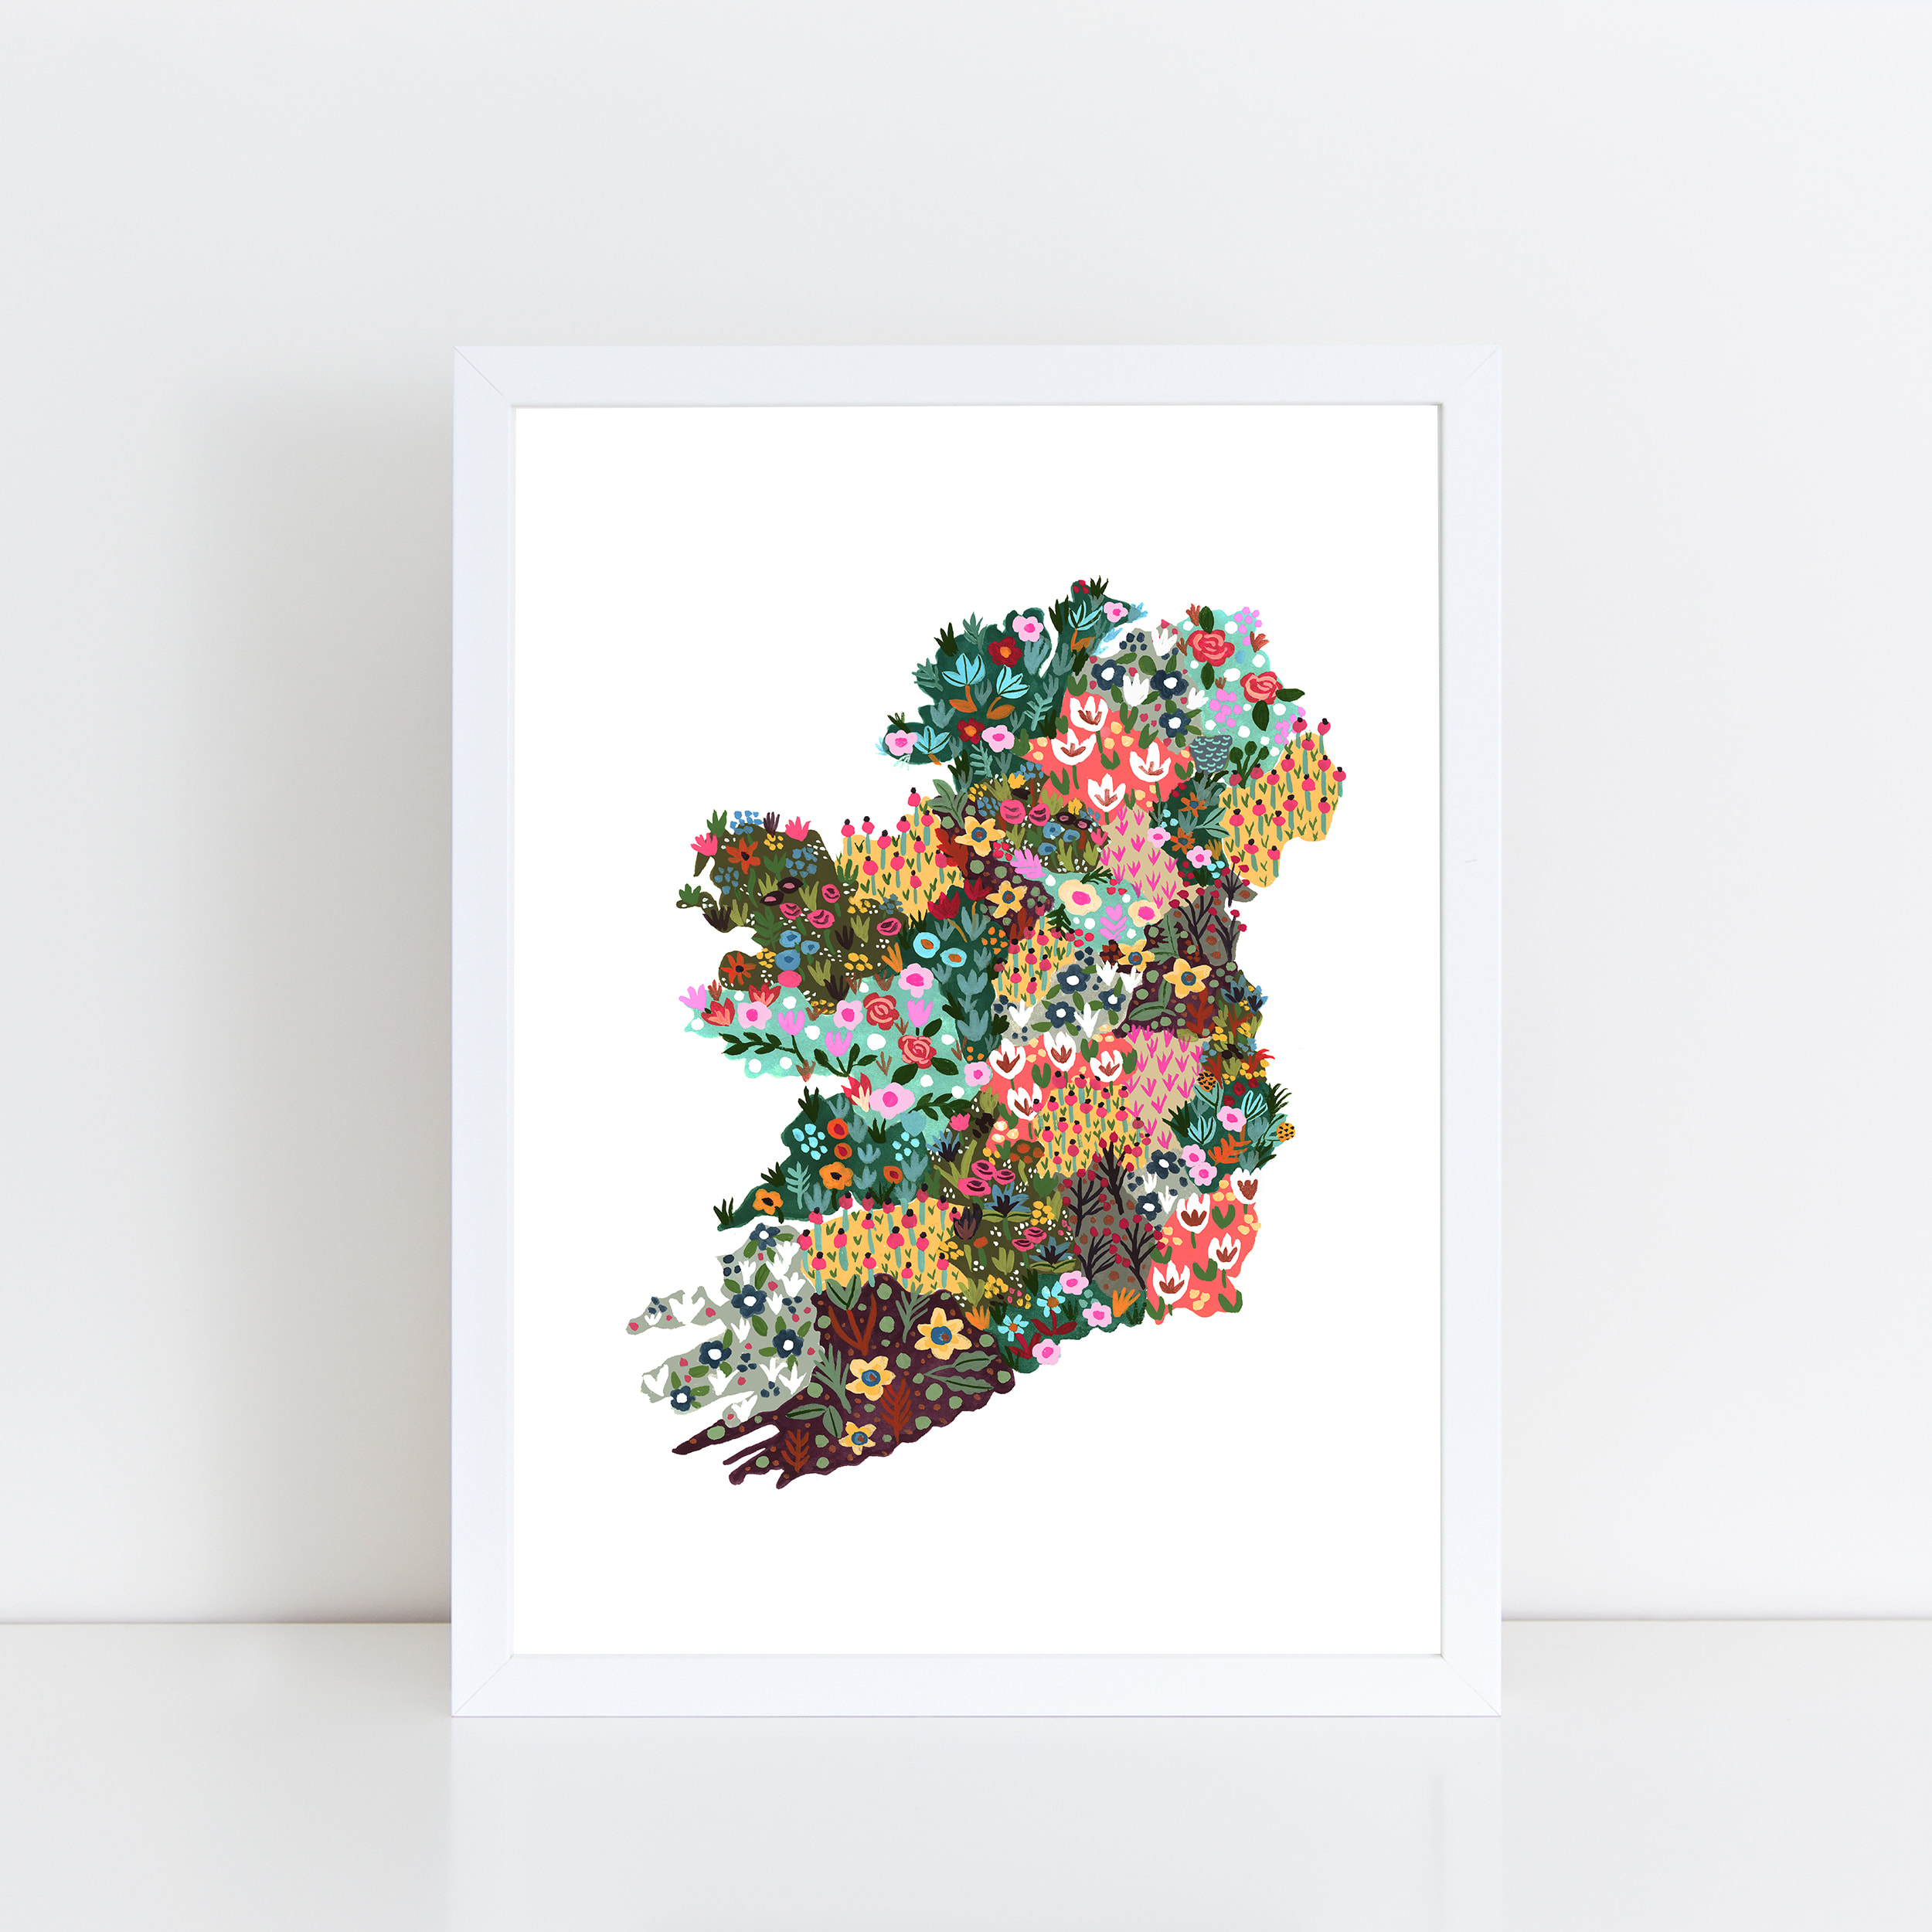 Map Of Ireland Print.Ireland Wildflowers Print